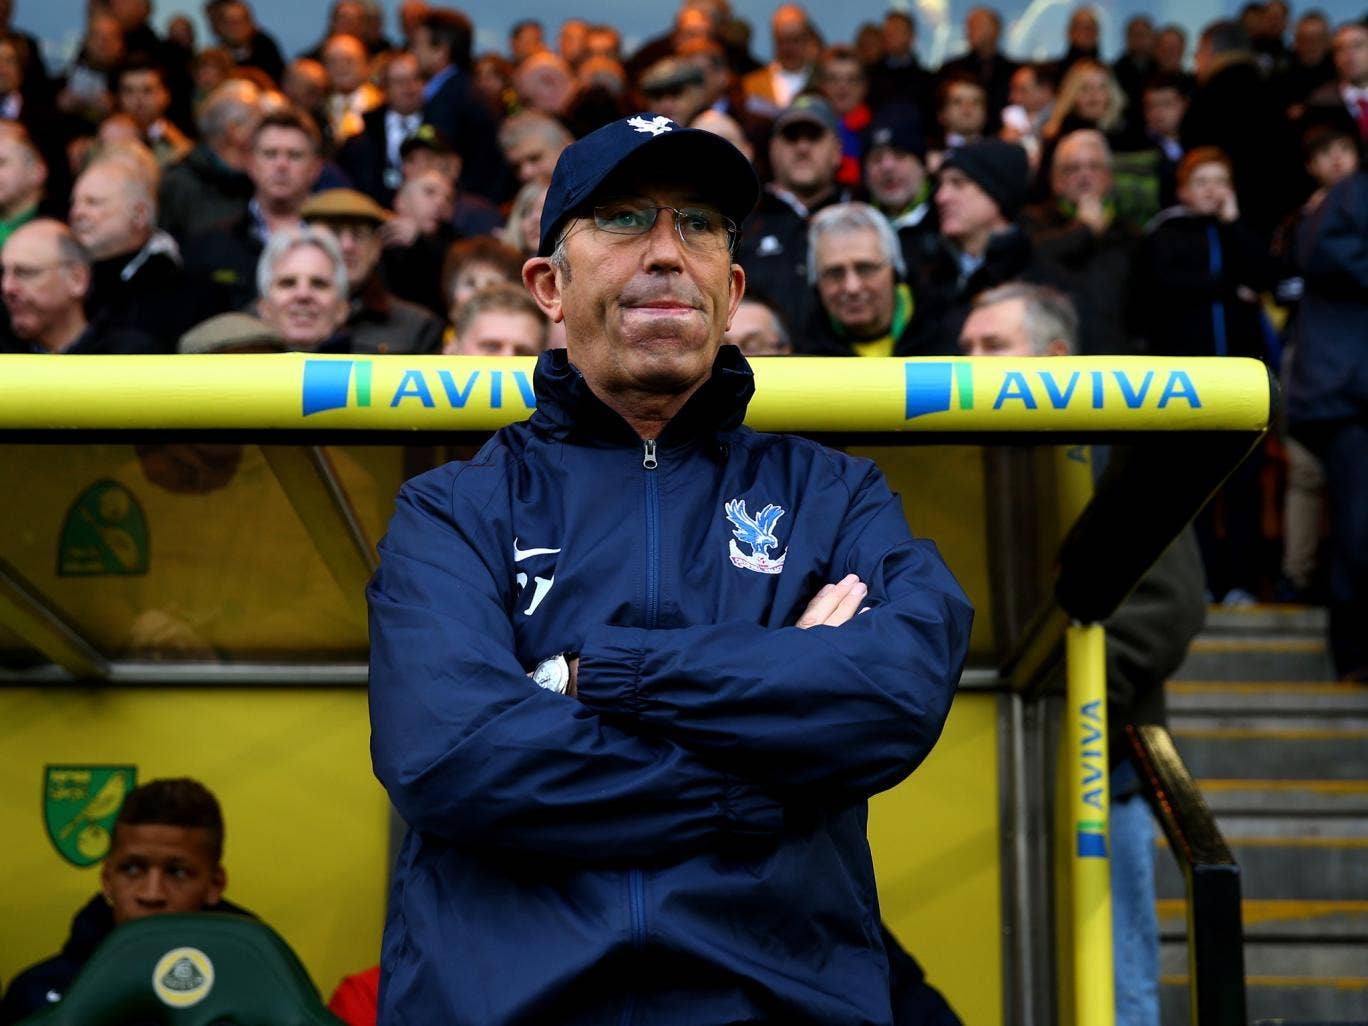 Crystal Palace manager Tony Pulis has called for fans to lift the team when they take on West Ham on Wednesday